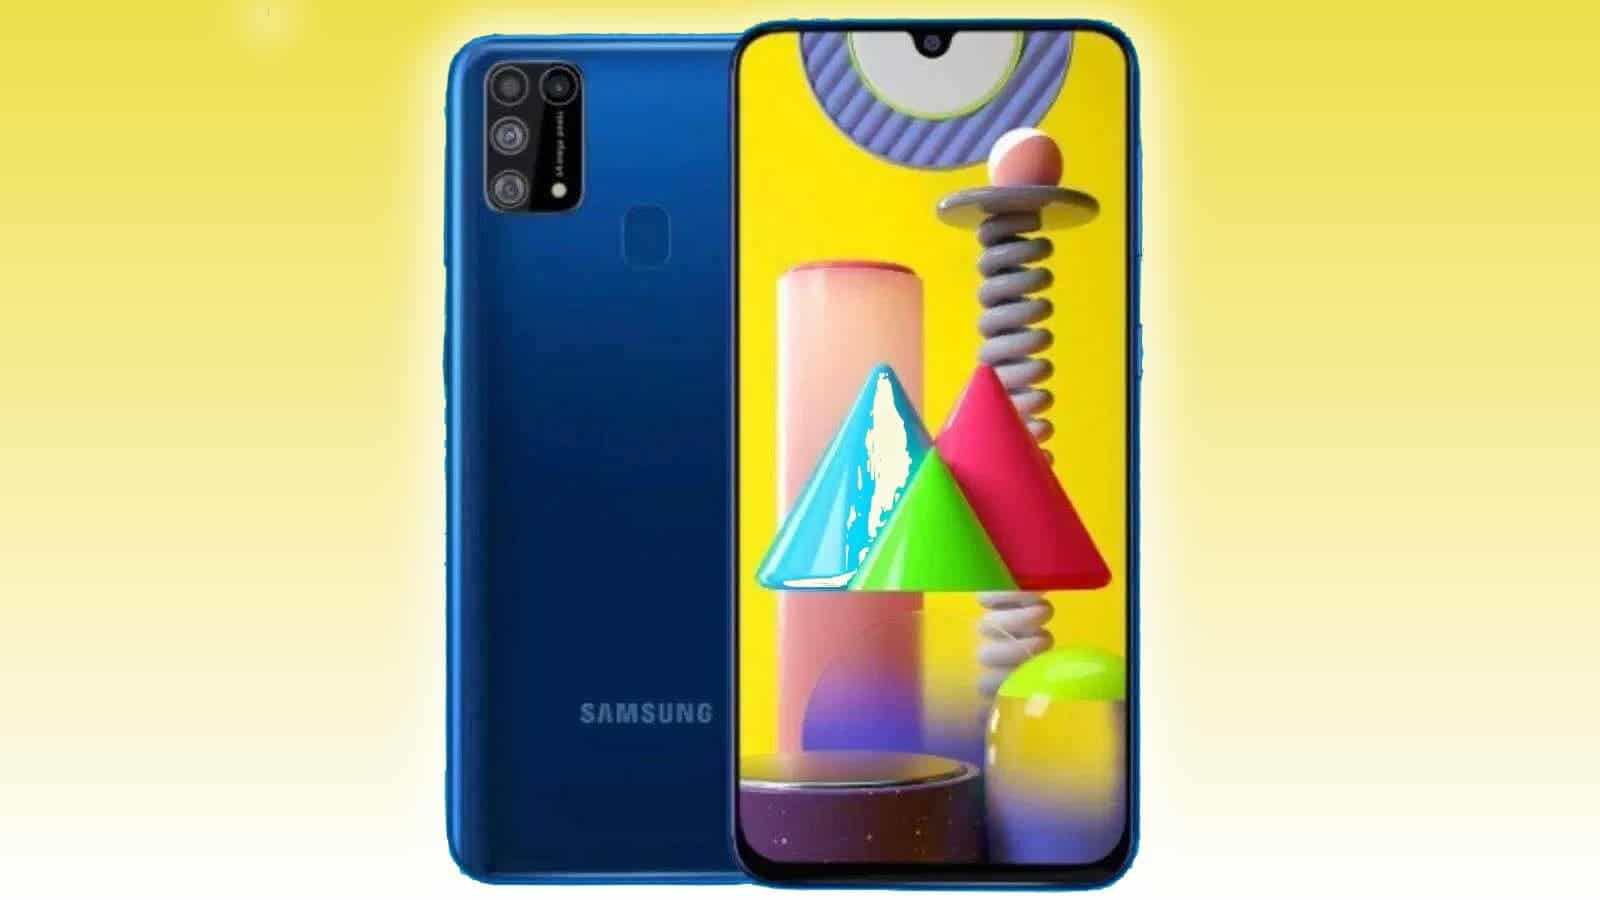 Samsung Galaxy M62 passes by FCC with 7,000mAh battery - Gizchina.com